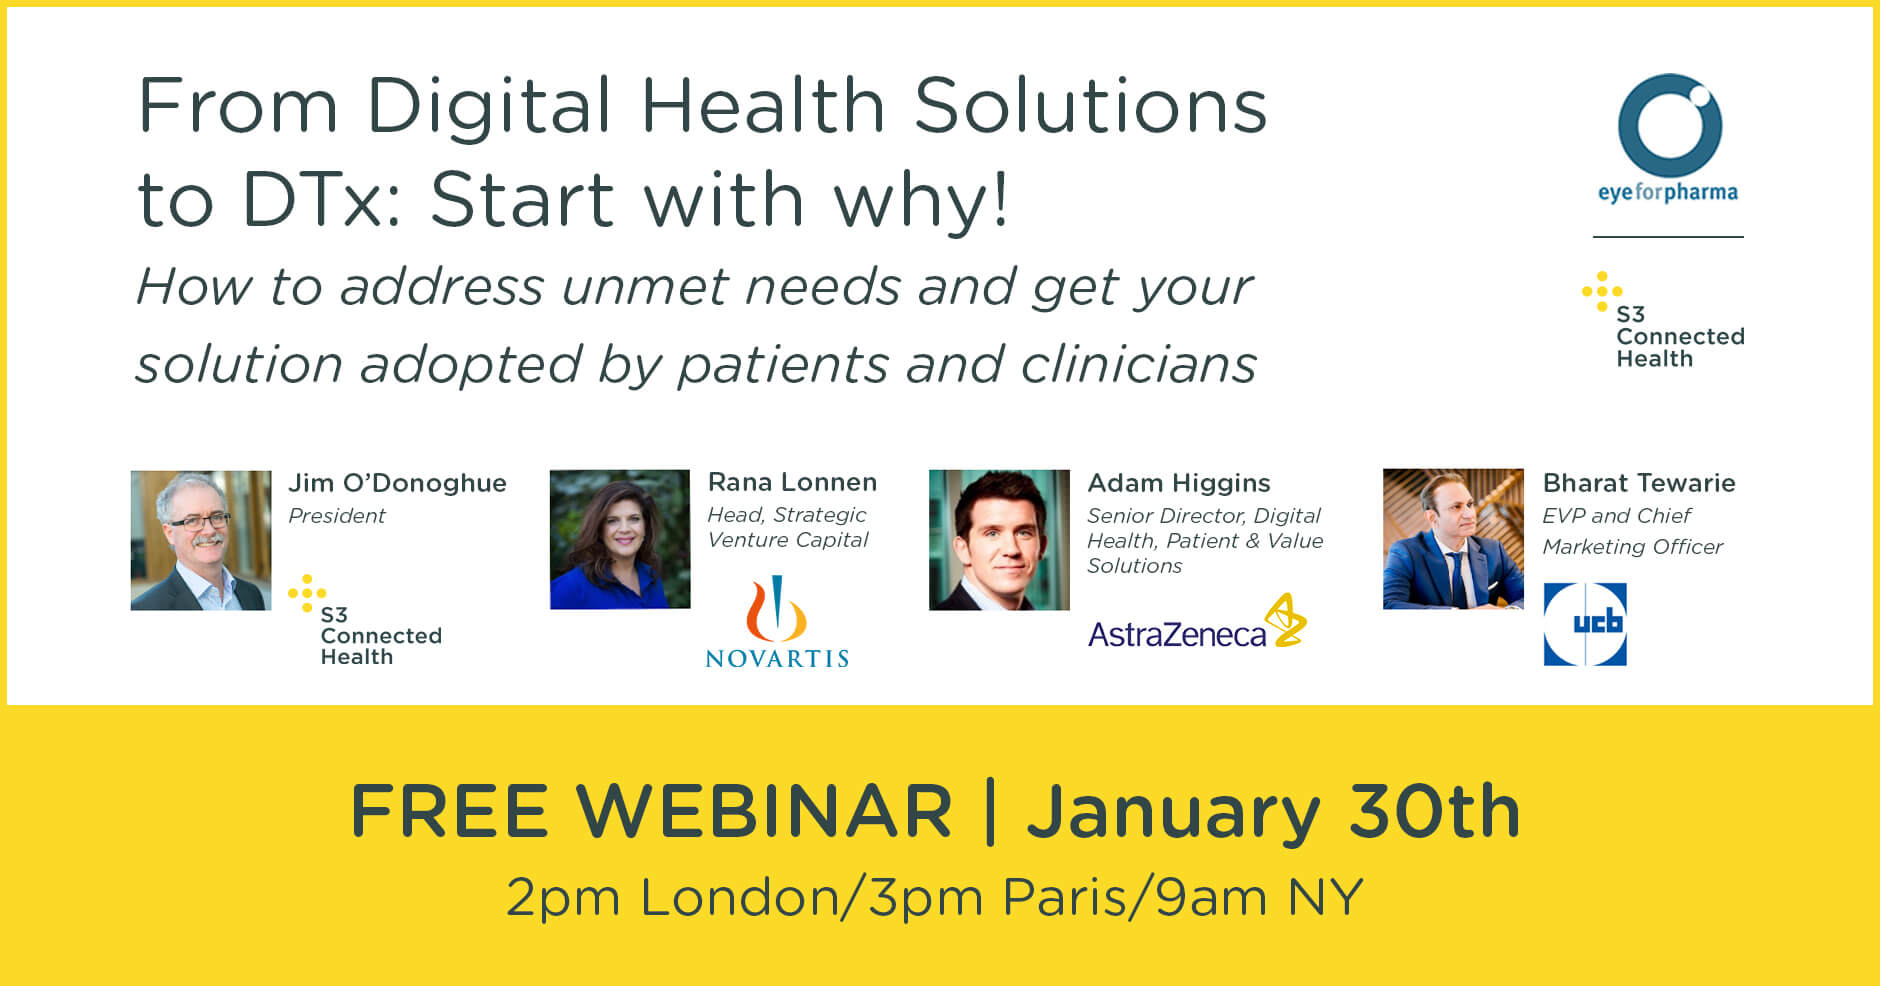 From Digital Health Solutions to Digital Therapeutics: Start with why!